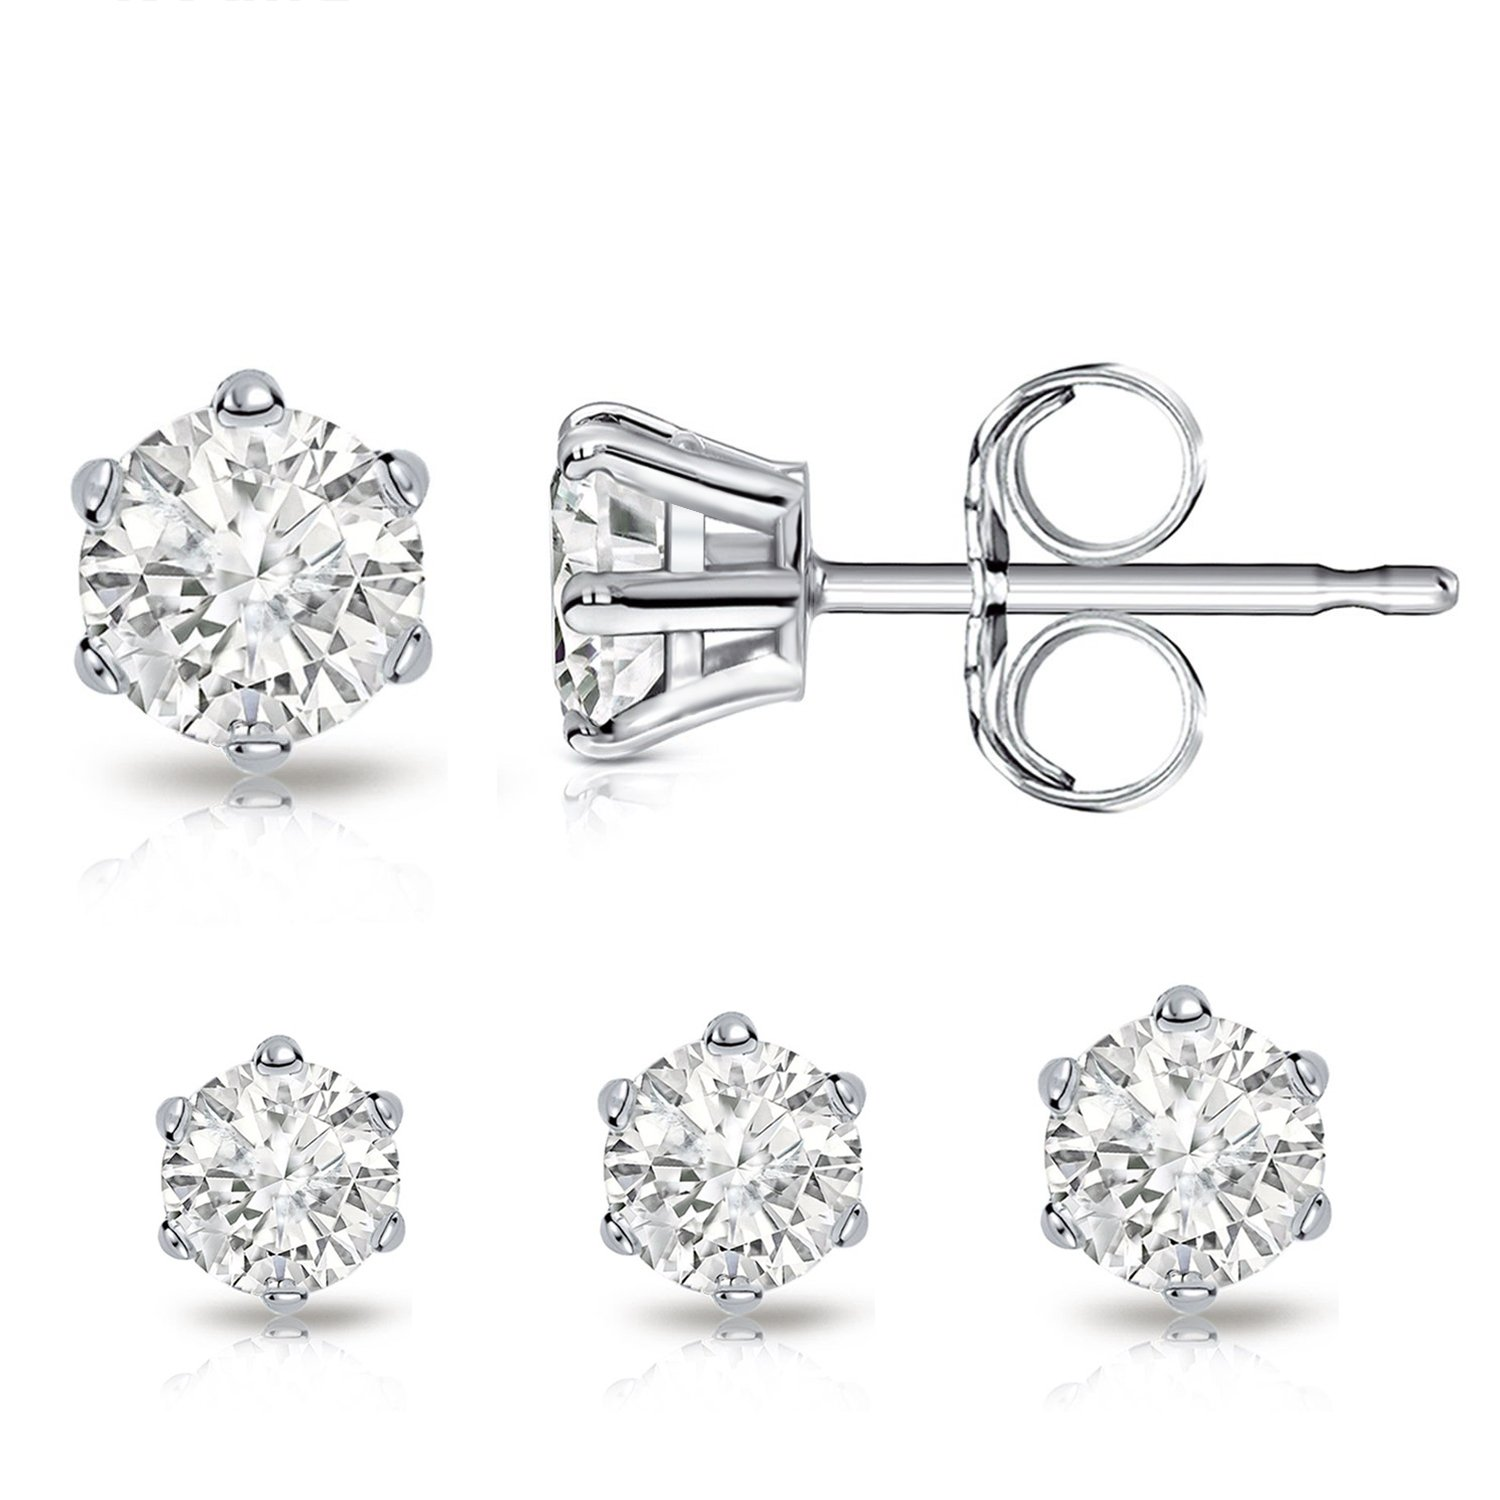 Billie Bijoux Sterling Silver Earrings Studs with Round Cut Cubic Zirconia Diamond Rhinestone, Womens Fine Jewelry (3 Pairs (4mm, 5mm, 6mm))